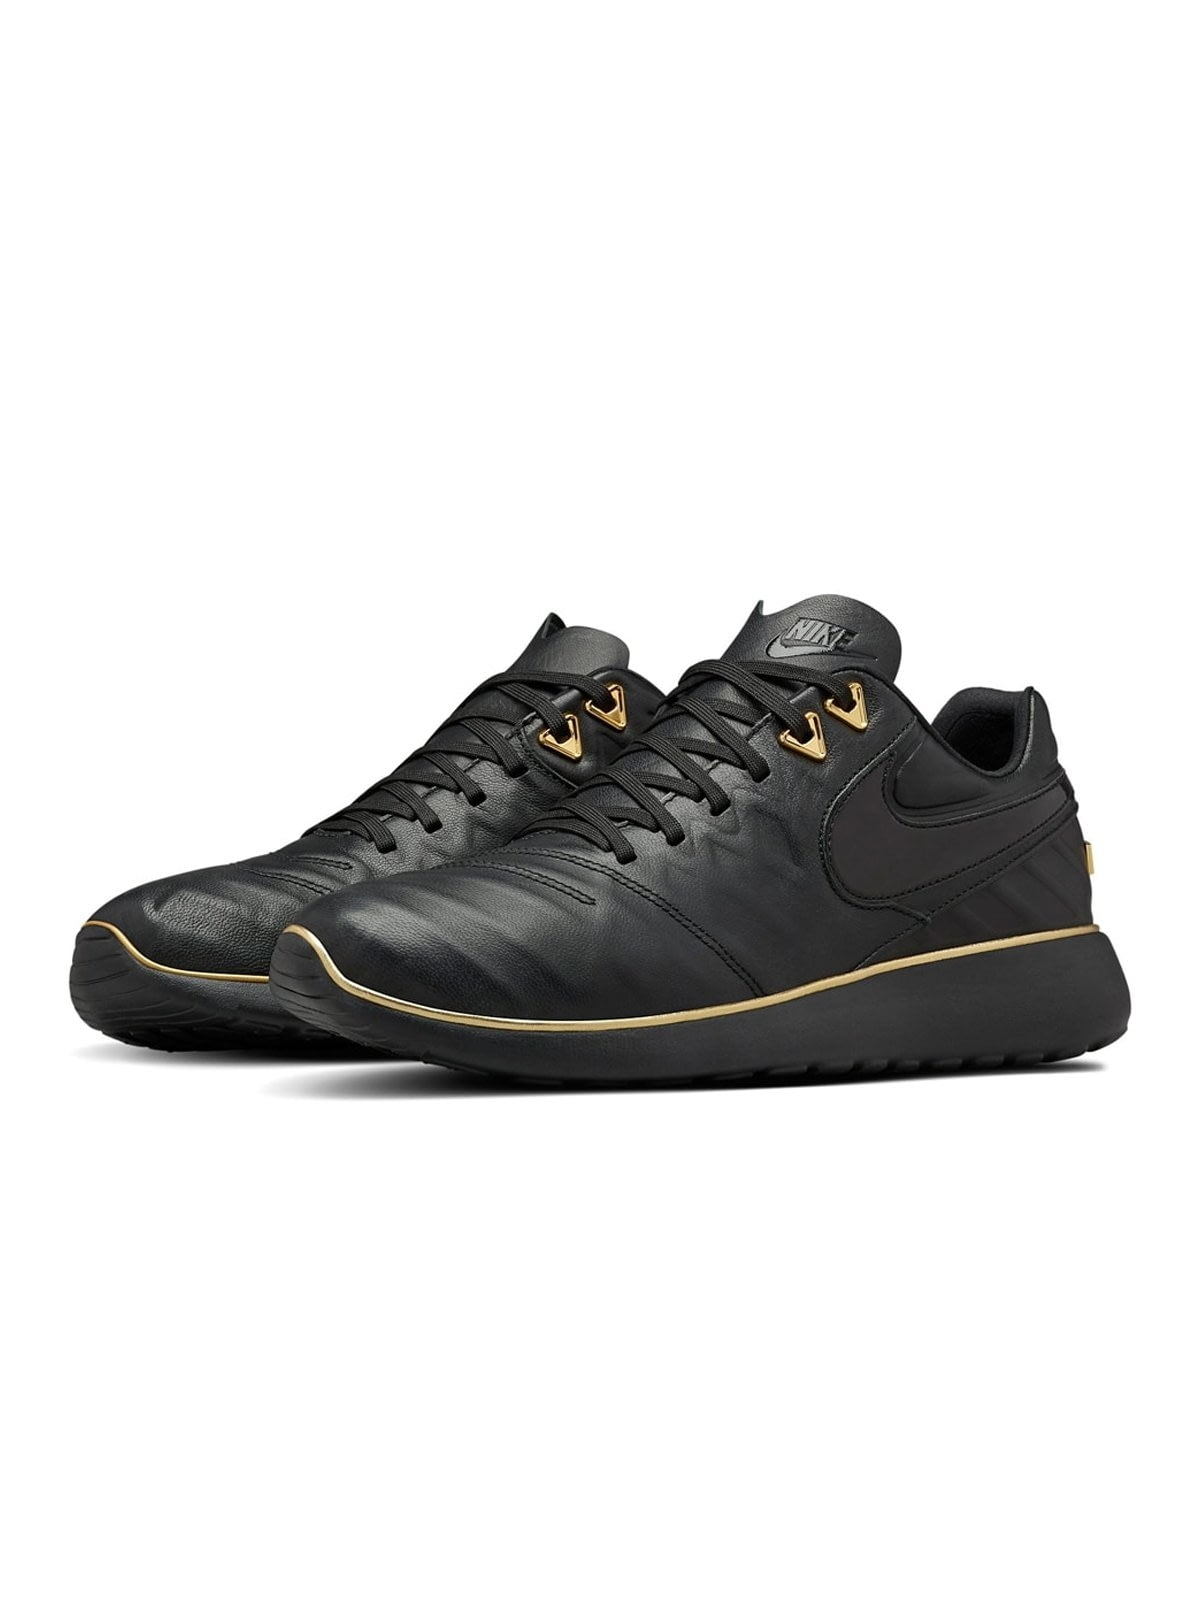 65bc3afc53e05 Buy Original Nike Nike x Olivier Rousteing Roshe Tiempo VI QS at Indonesia